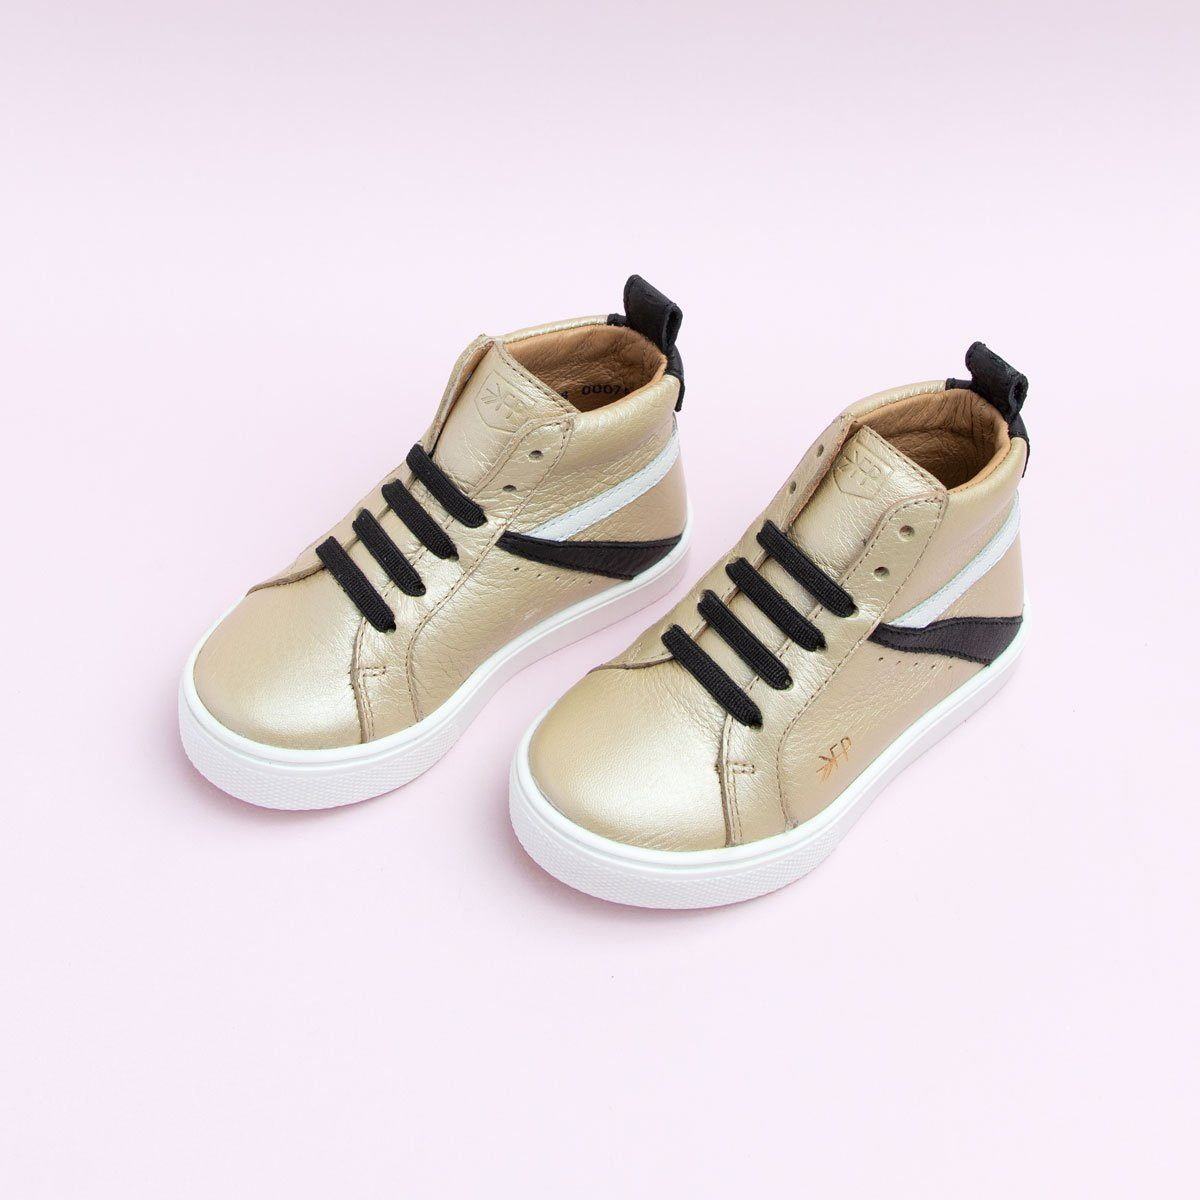 Platinum High Top Sneaker Kids - High Top Sneaker Kids Sneakers